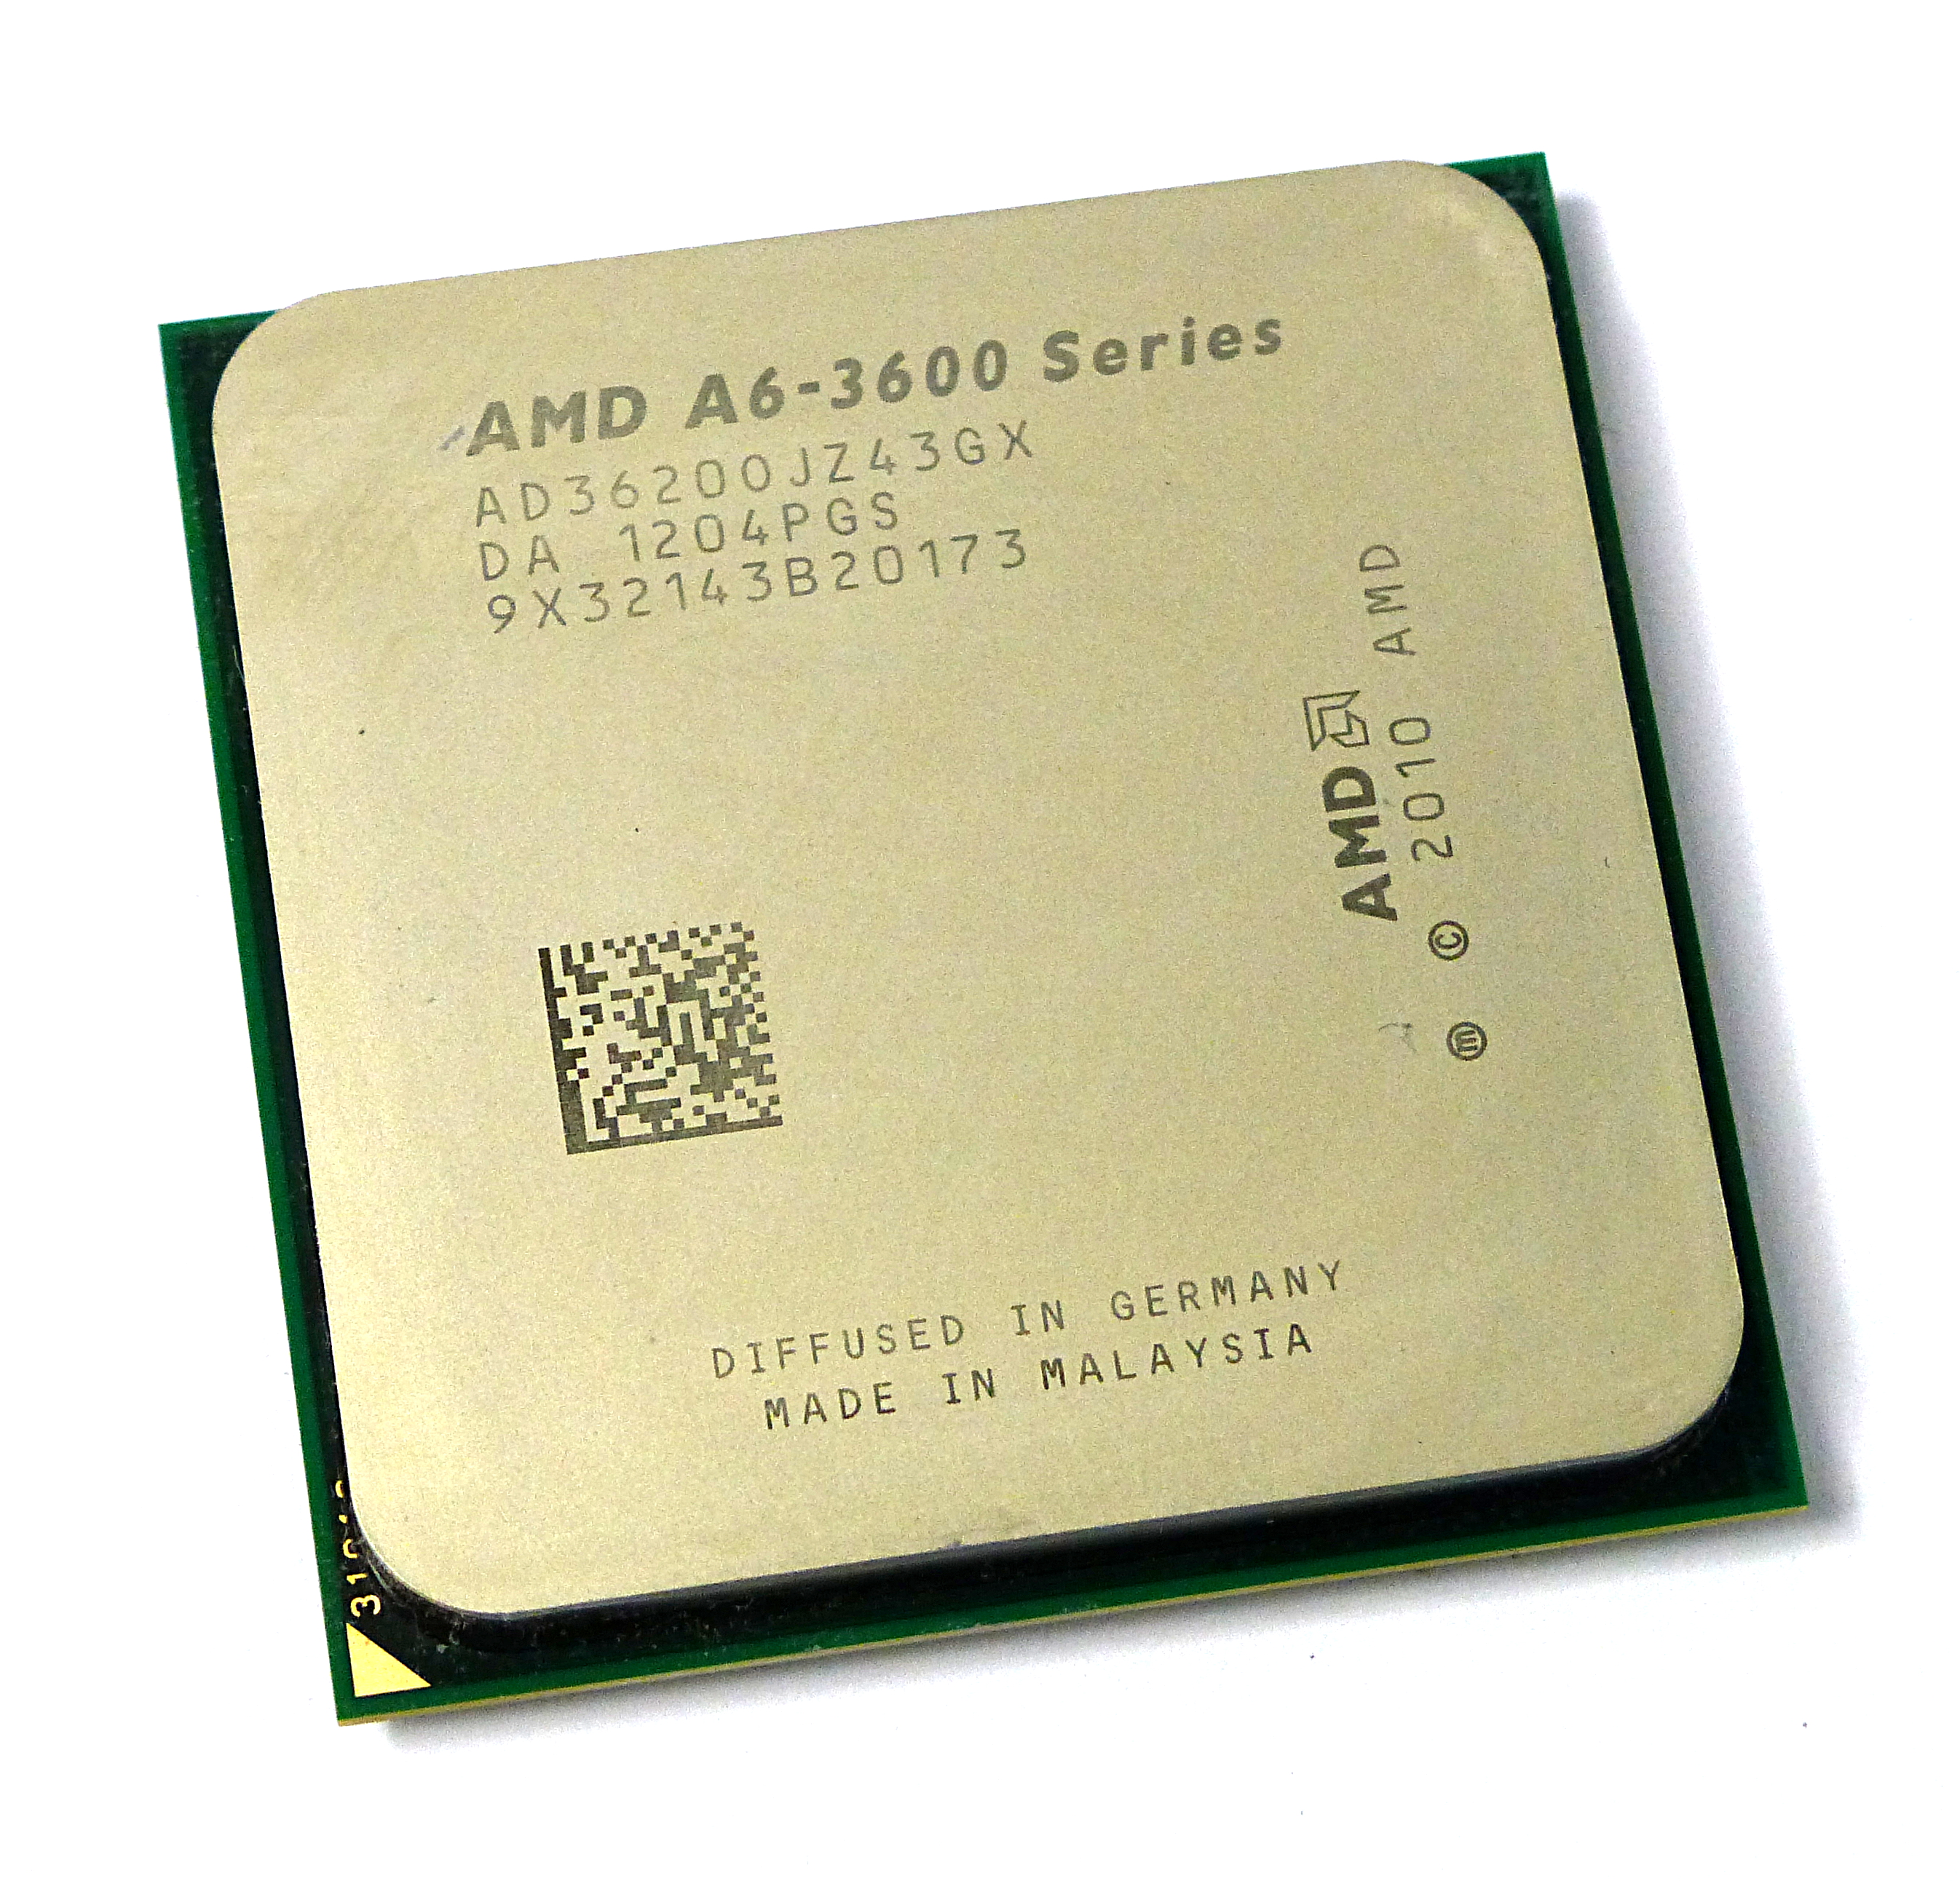 AMD AD36200JZ43GX A6-3600 2.1GHz Socket FM1 Quad Core Processor